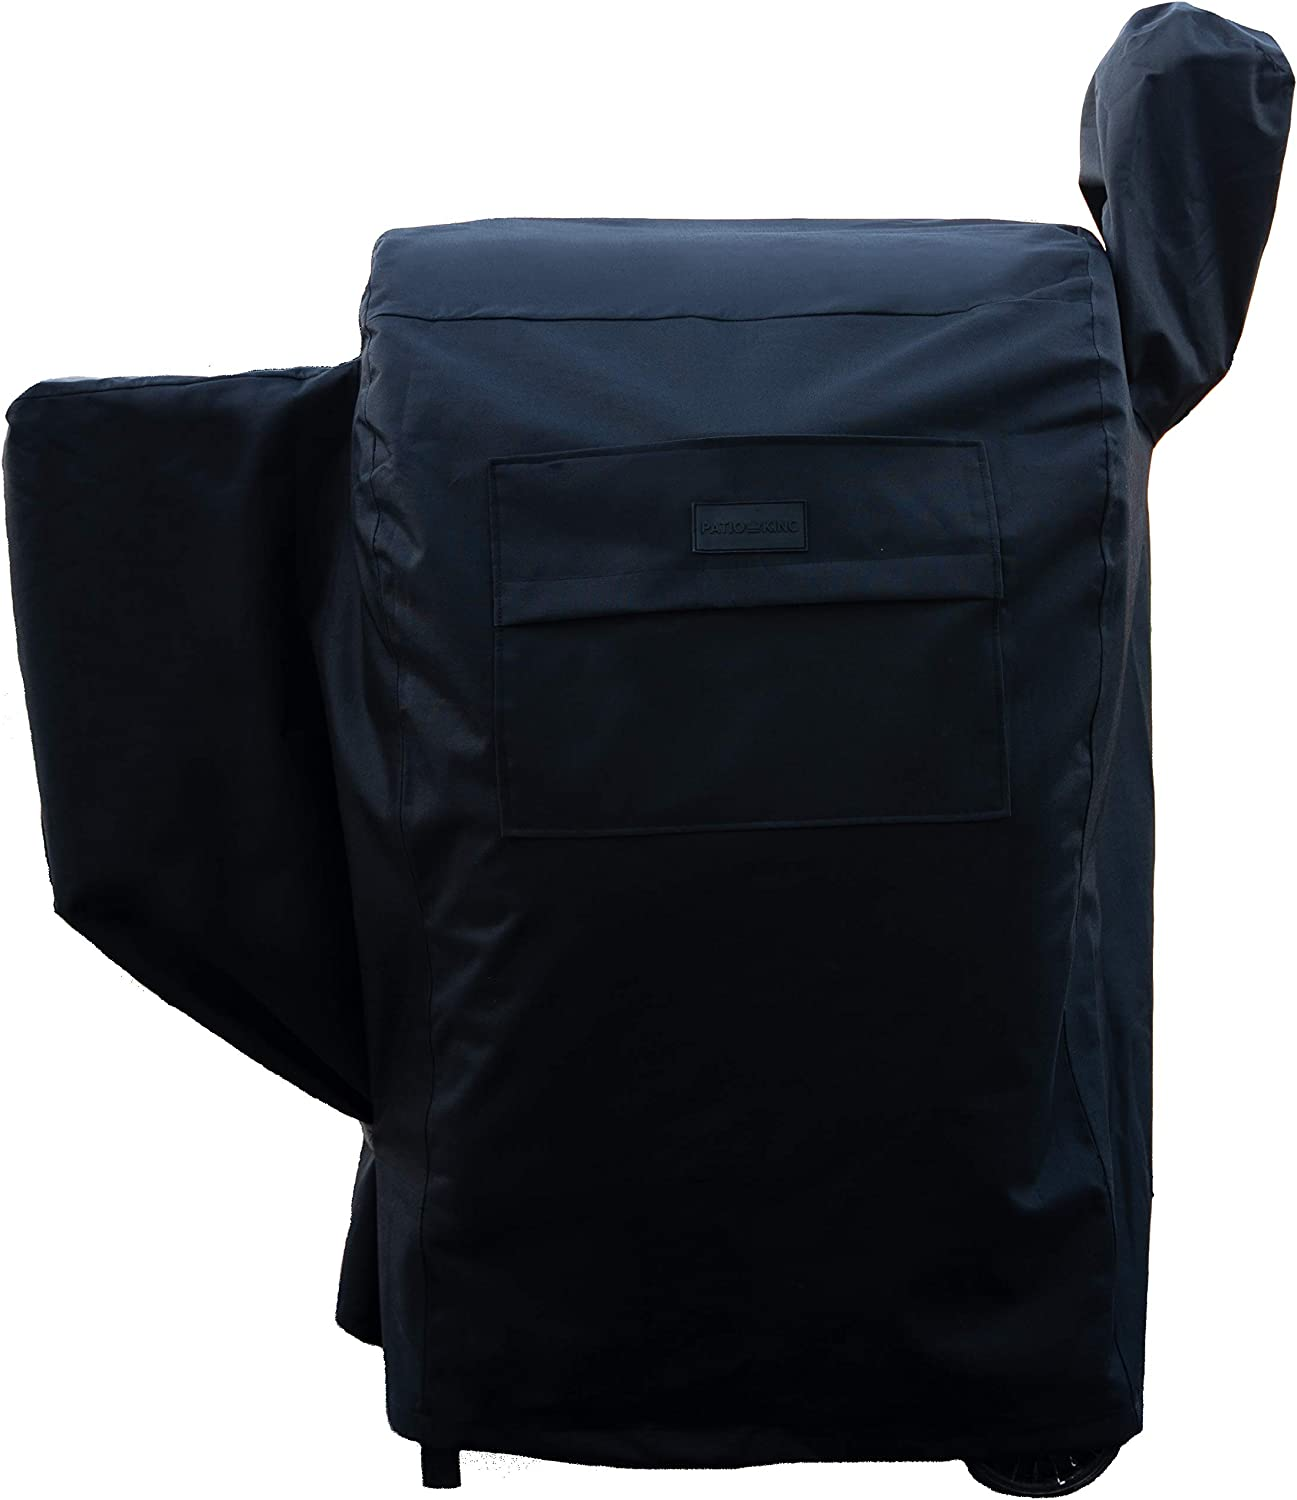 Patio Max 52% OFF King Grill Cover Replacement for Traeger Ea Series Super popular specialty store 22 Pro